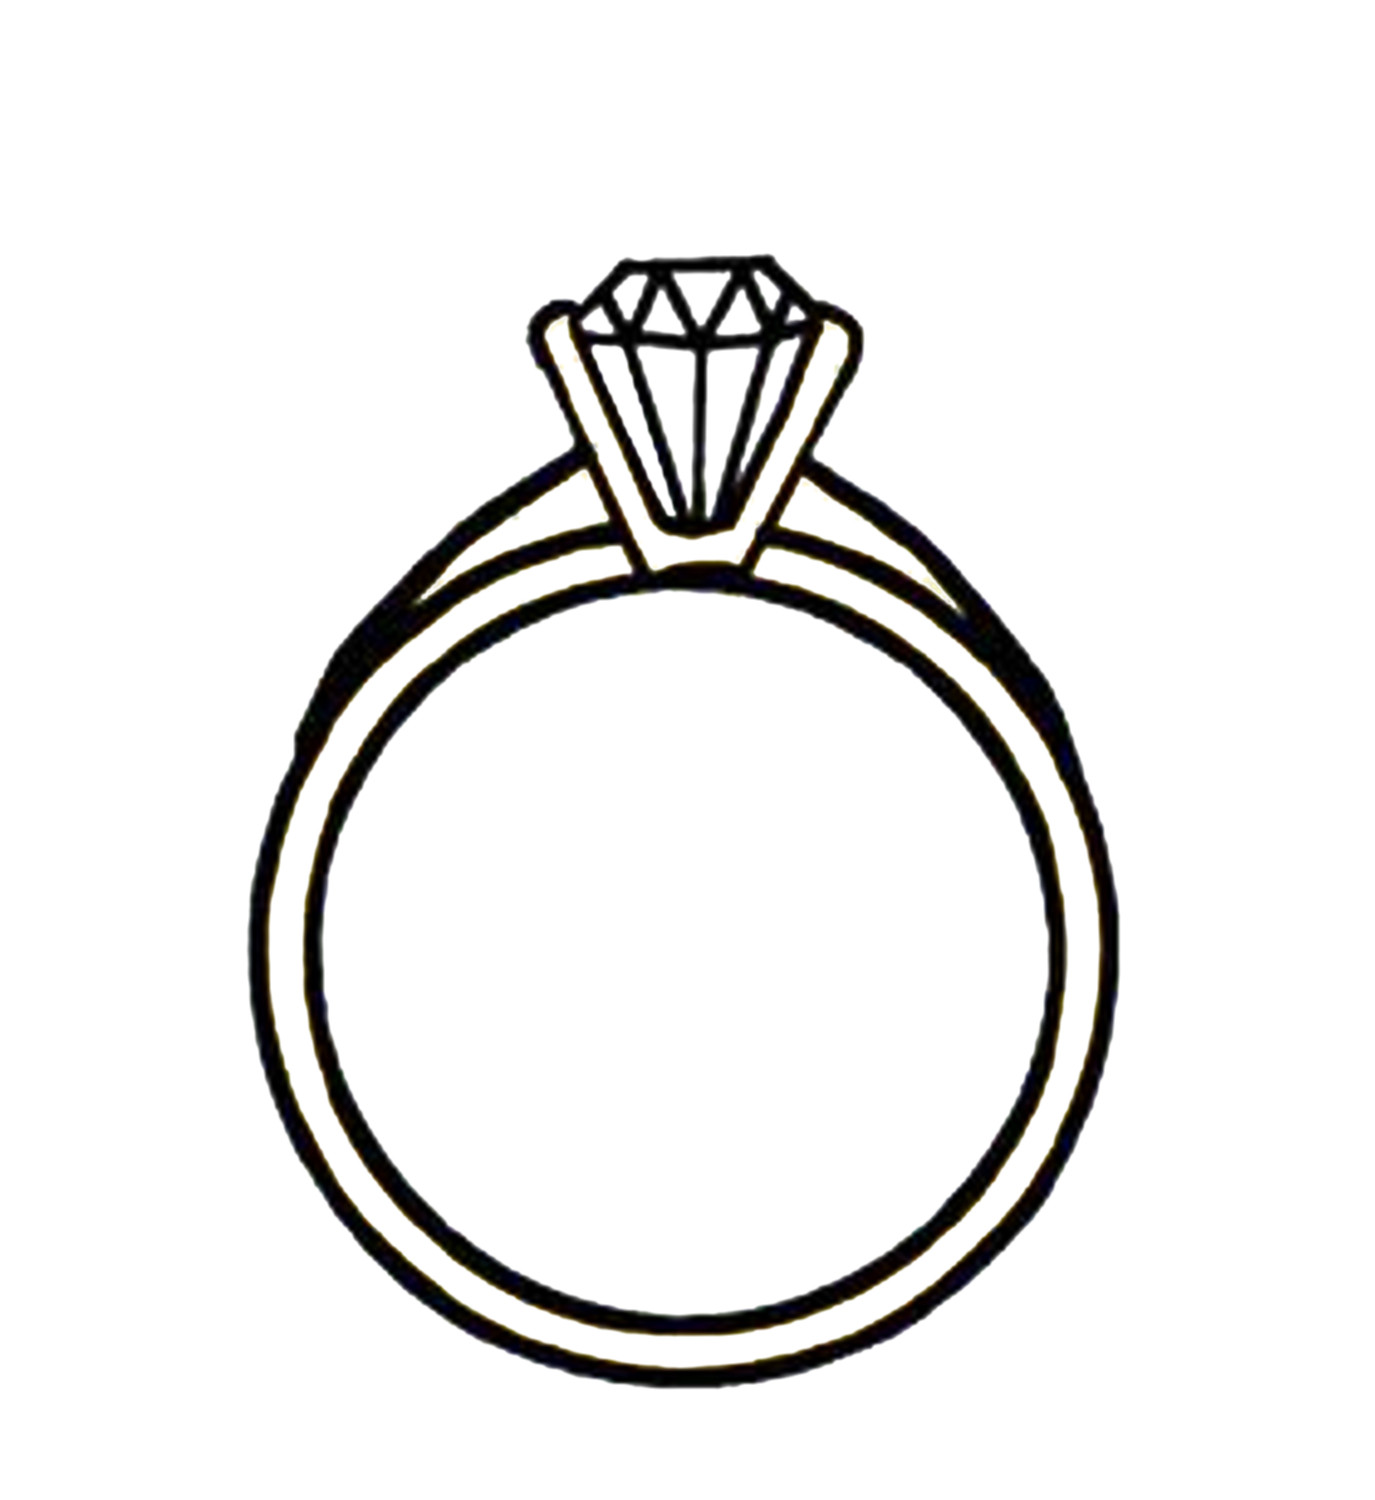 diamond mens rings wedding women s clipart cut home surprising vintage princess womens ebay design men